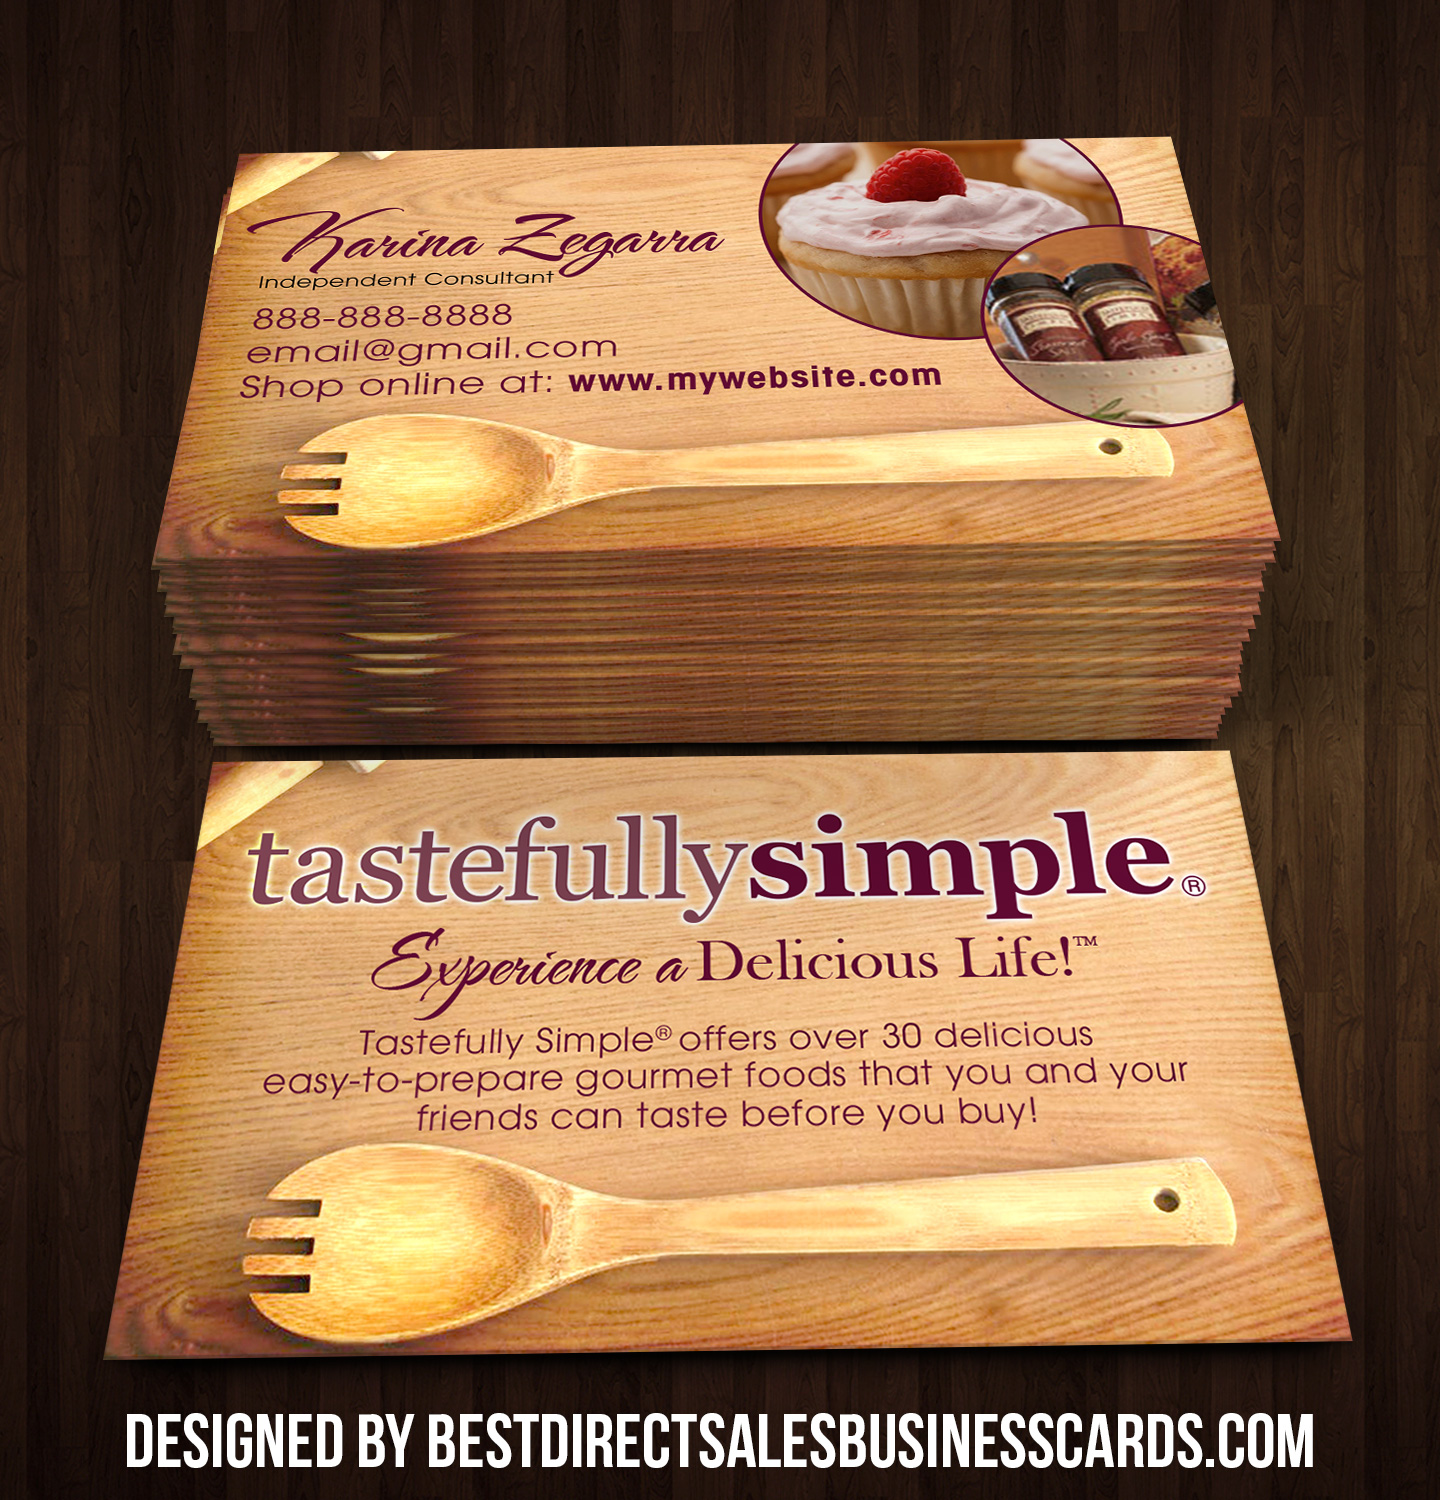 Tastefully Simple Business Cards 3 · KZ Creative Services